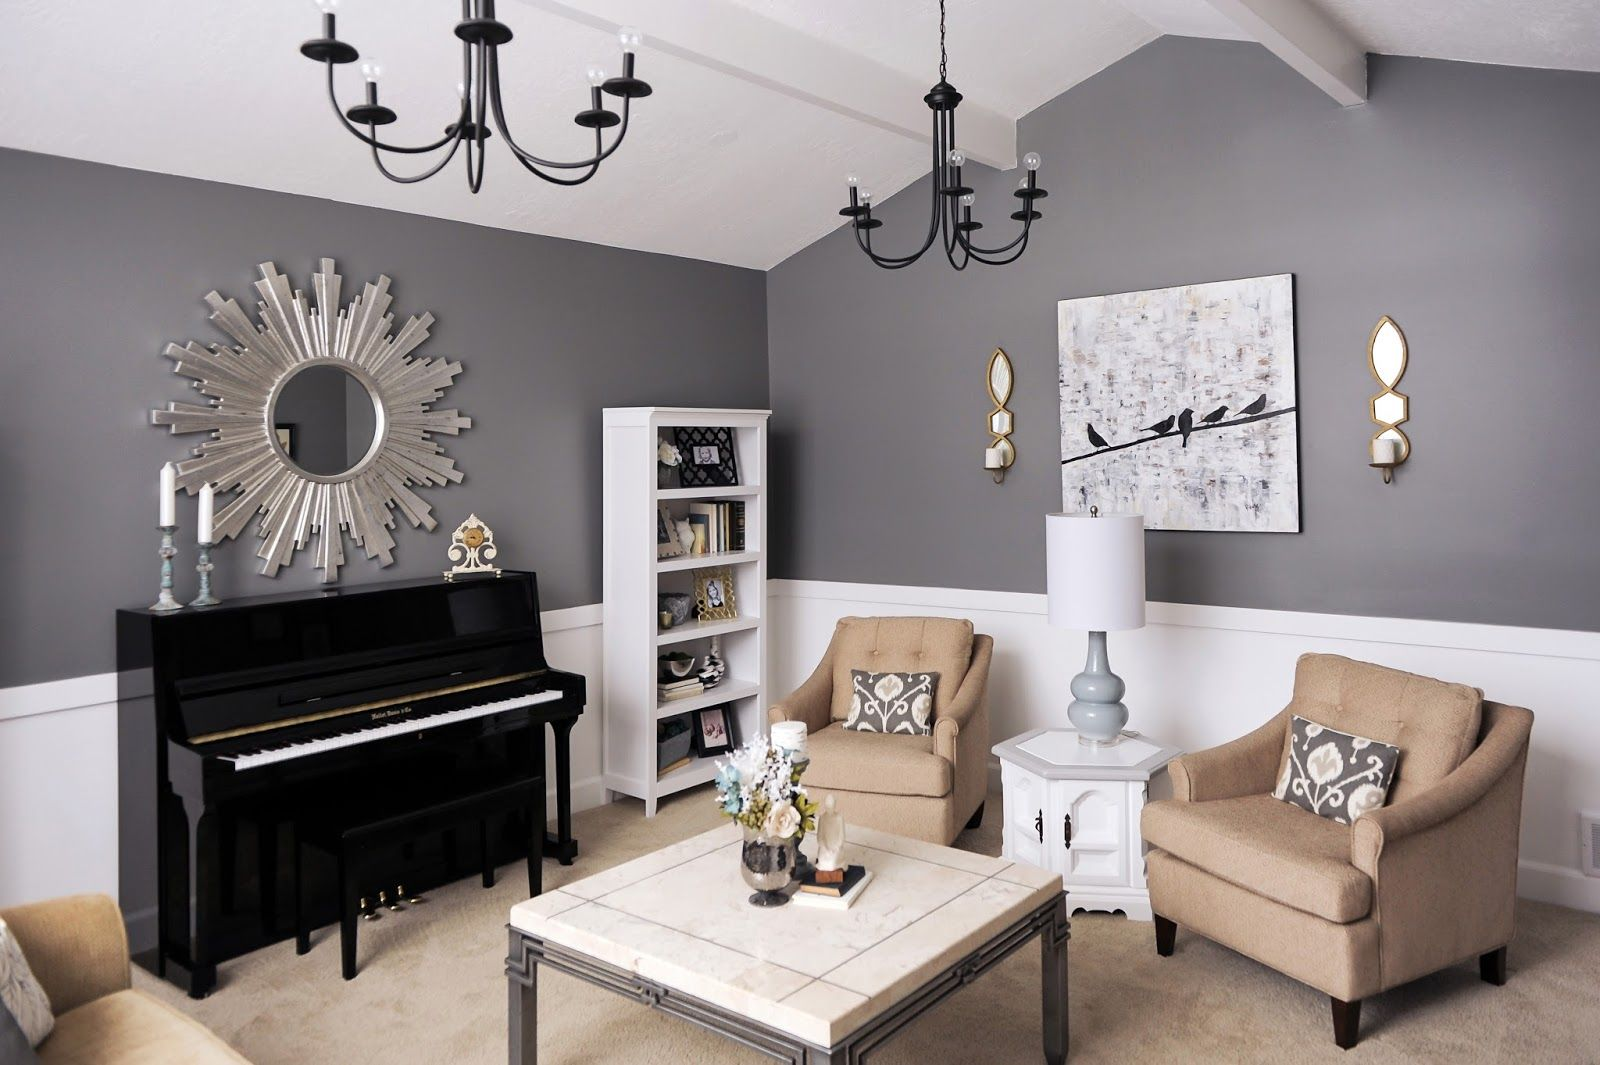 Living Room Modern Country Living Rooms 1000 images about design inspiration living room on pinterest corner fireplaces piano and rooms